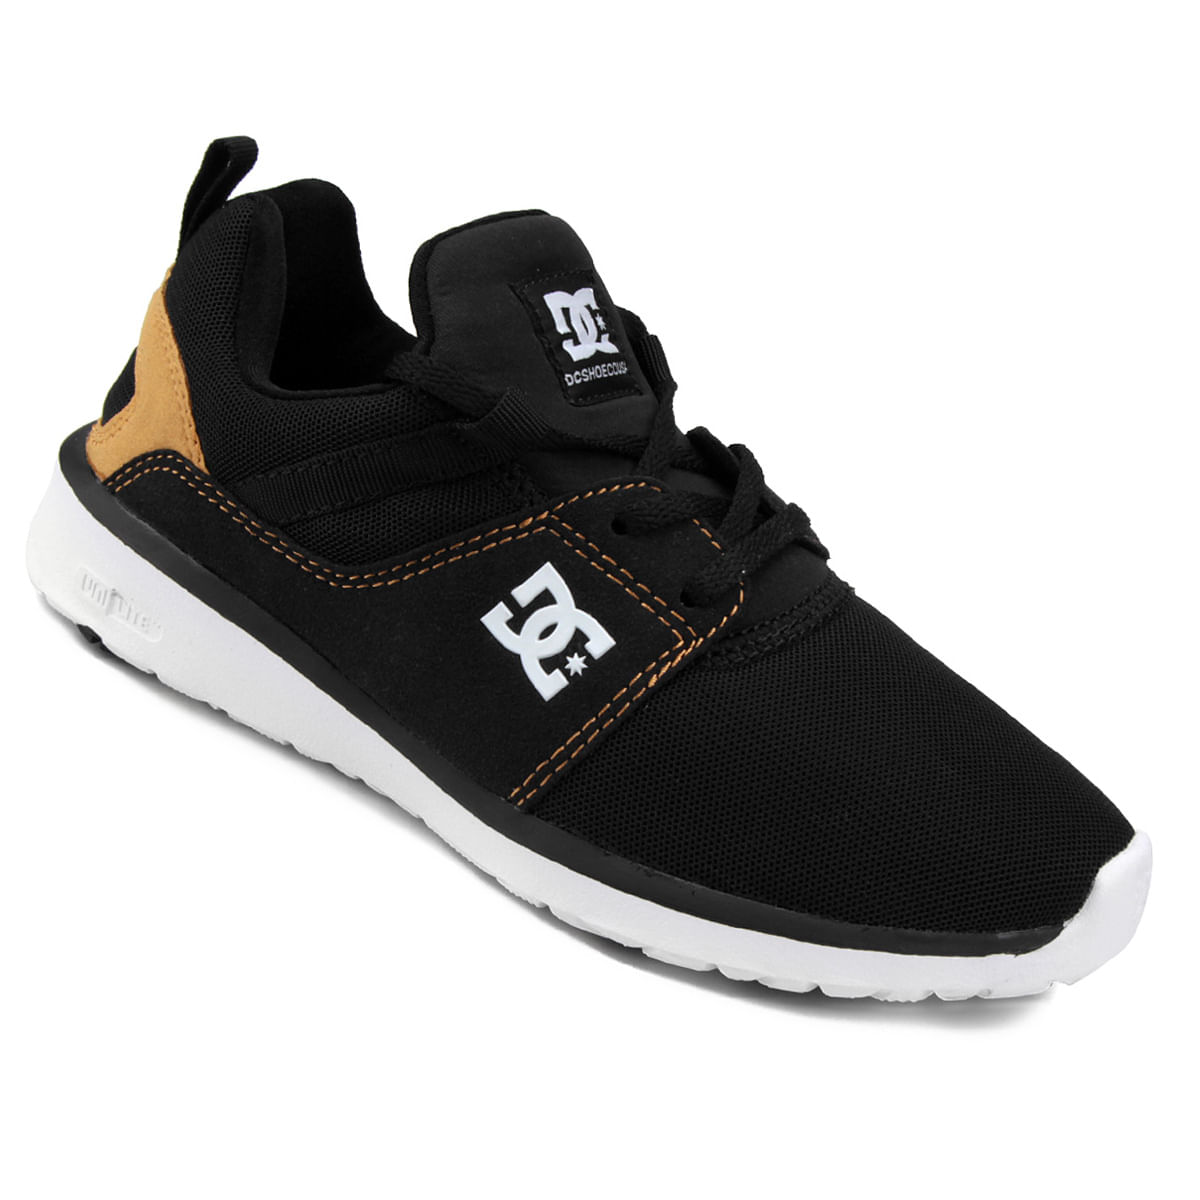 f71007f67 Tênis DC Shoes Heathrow Masculino - Comprar no ShopFácil - uma ...